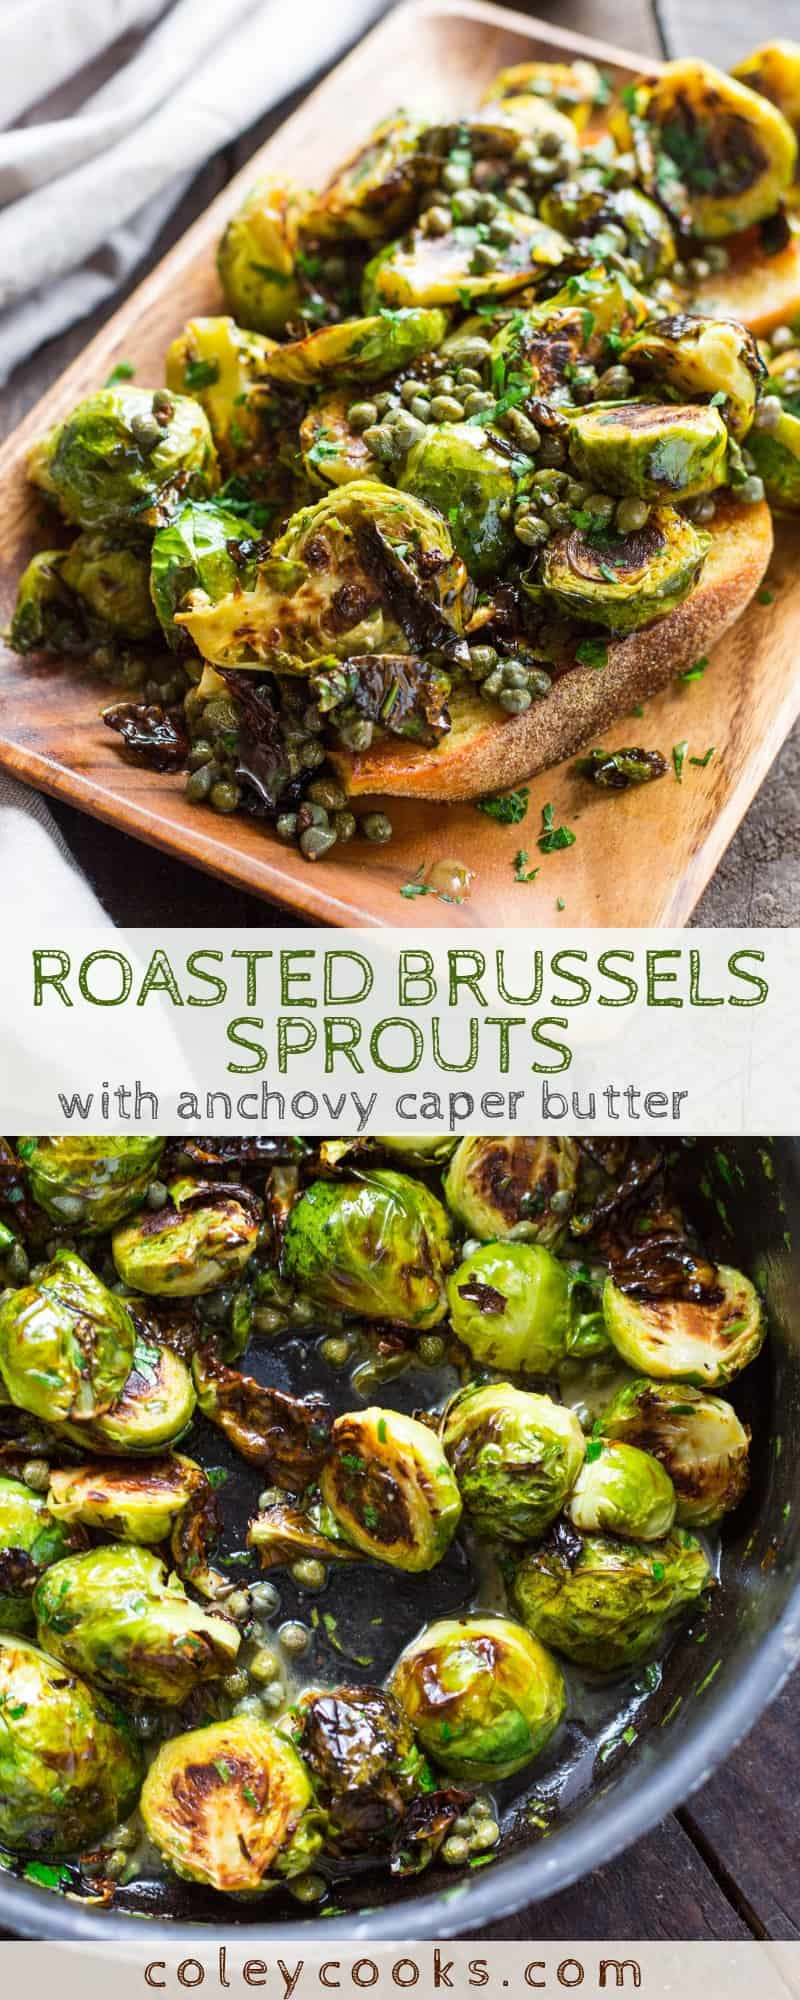 Roasted Brussels Sprouts with Anchovy Caper Butter | This easy and delicious roasted brussels sprout recipe is the best side dish ever! Great for Thanksgiving #roasted #brusselssprouts #anchovies #capers #side #thanksgiving #recipe | ColeyCooks.com